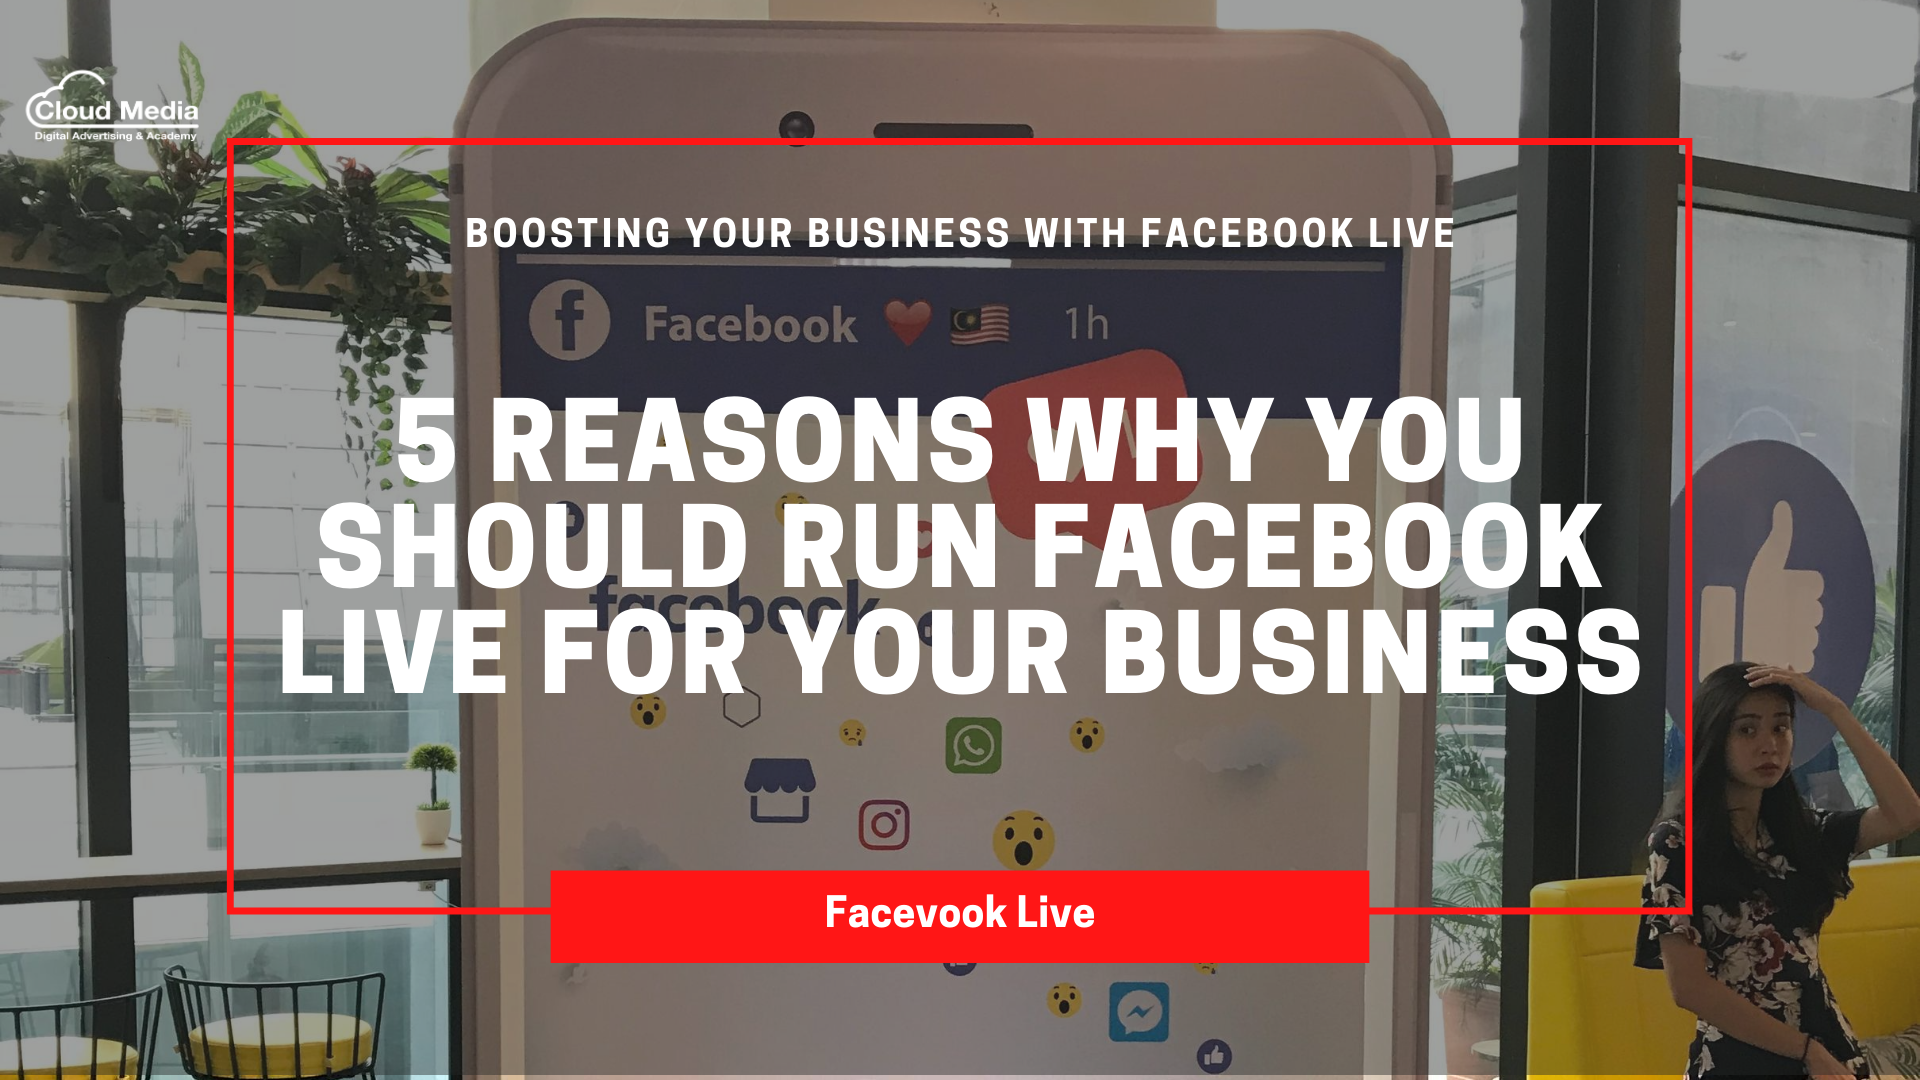 5 Reasons Why You Should Use Facebook Live For Your Business